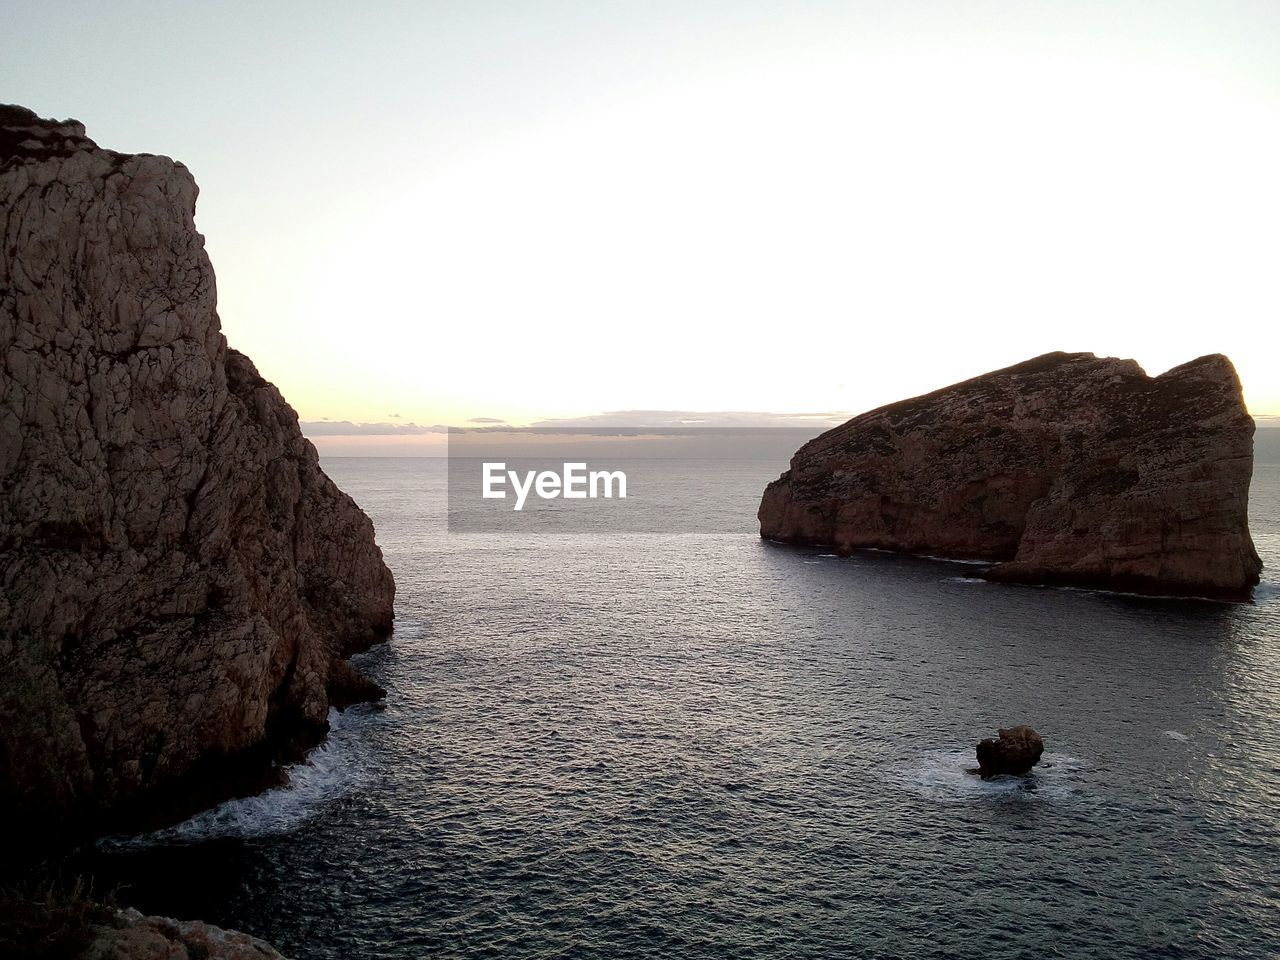 sea, water, sky, beauty in nature, scenics - nature, rock, tranquil scene, rock formation, rock - object, tranquility, waterfront, solid, nature, sunset, no people, non-urban scene, idyllic, horizon, horizon over water, outdoors, stack rock, eroded